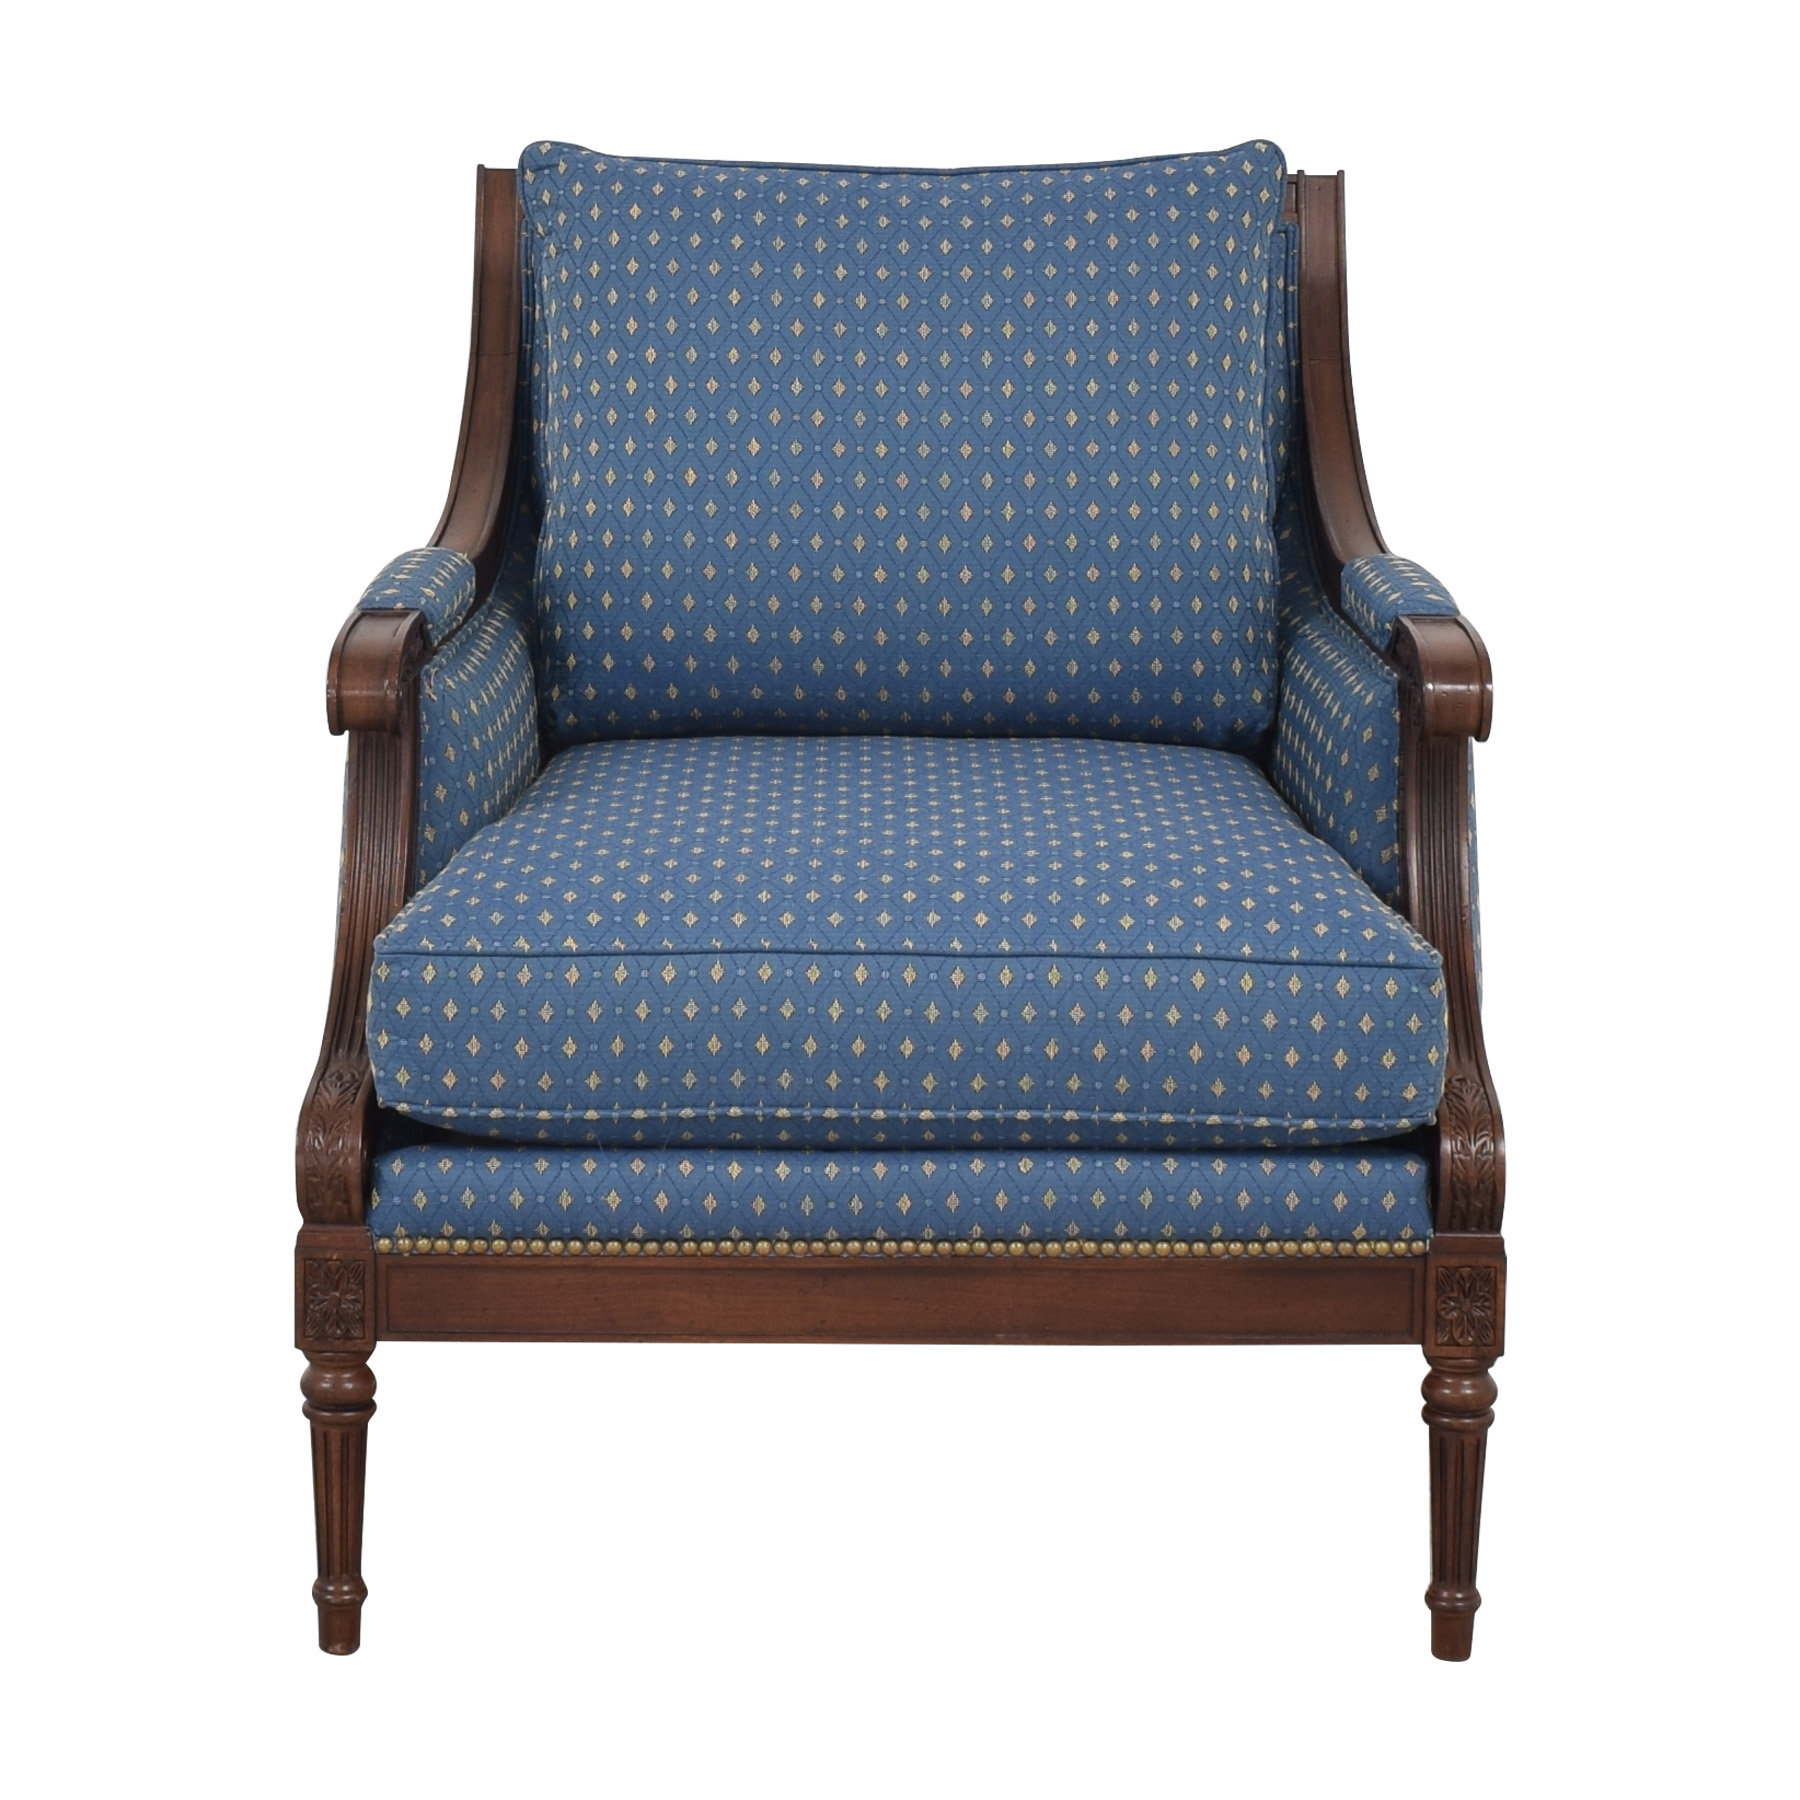 Ethan Allen Ethan Allen Accent Chair Chairs